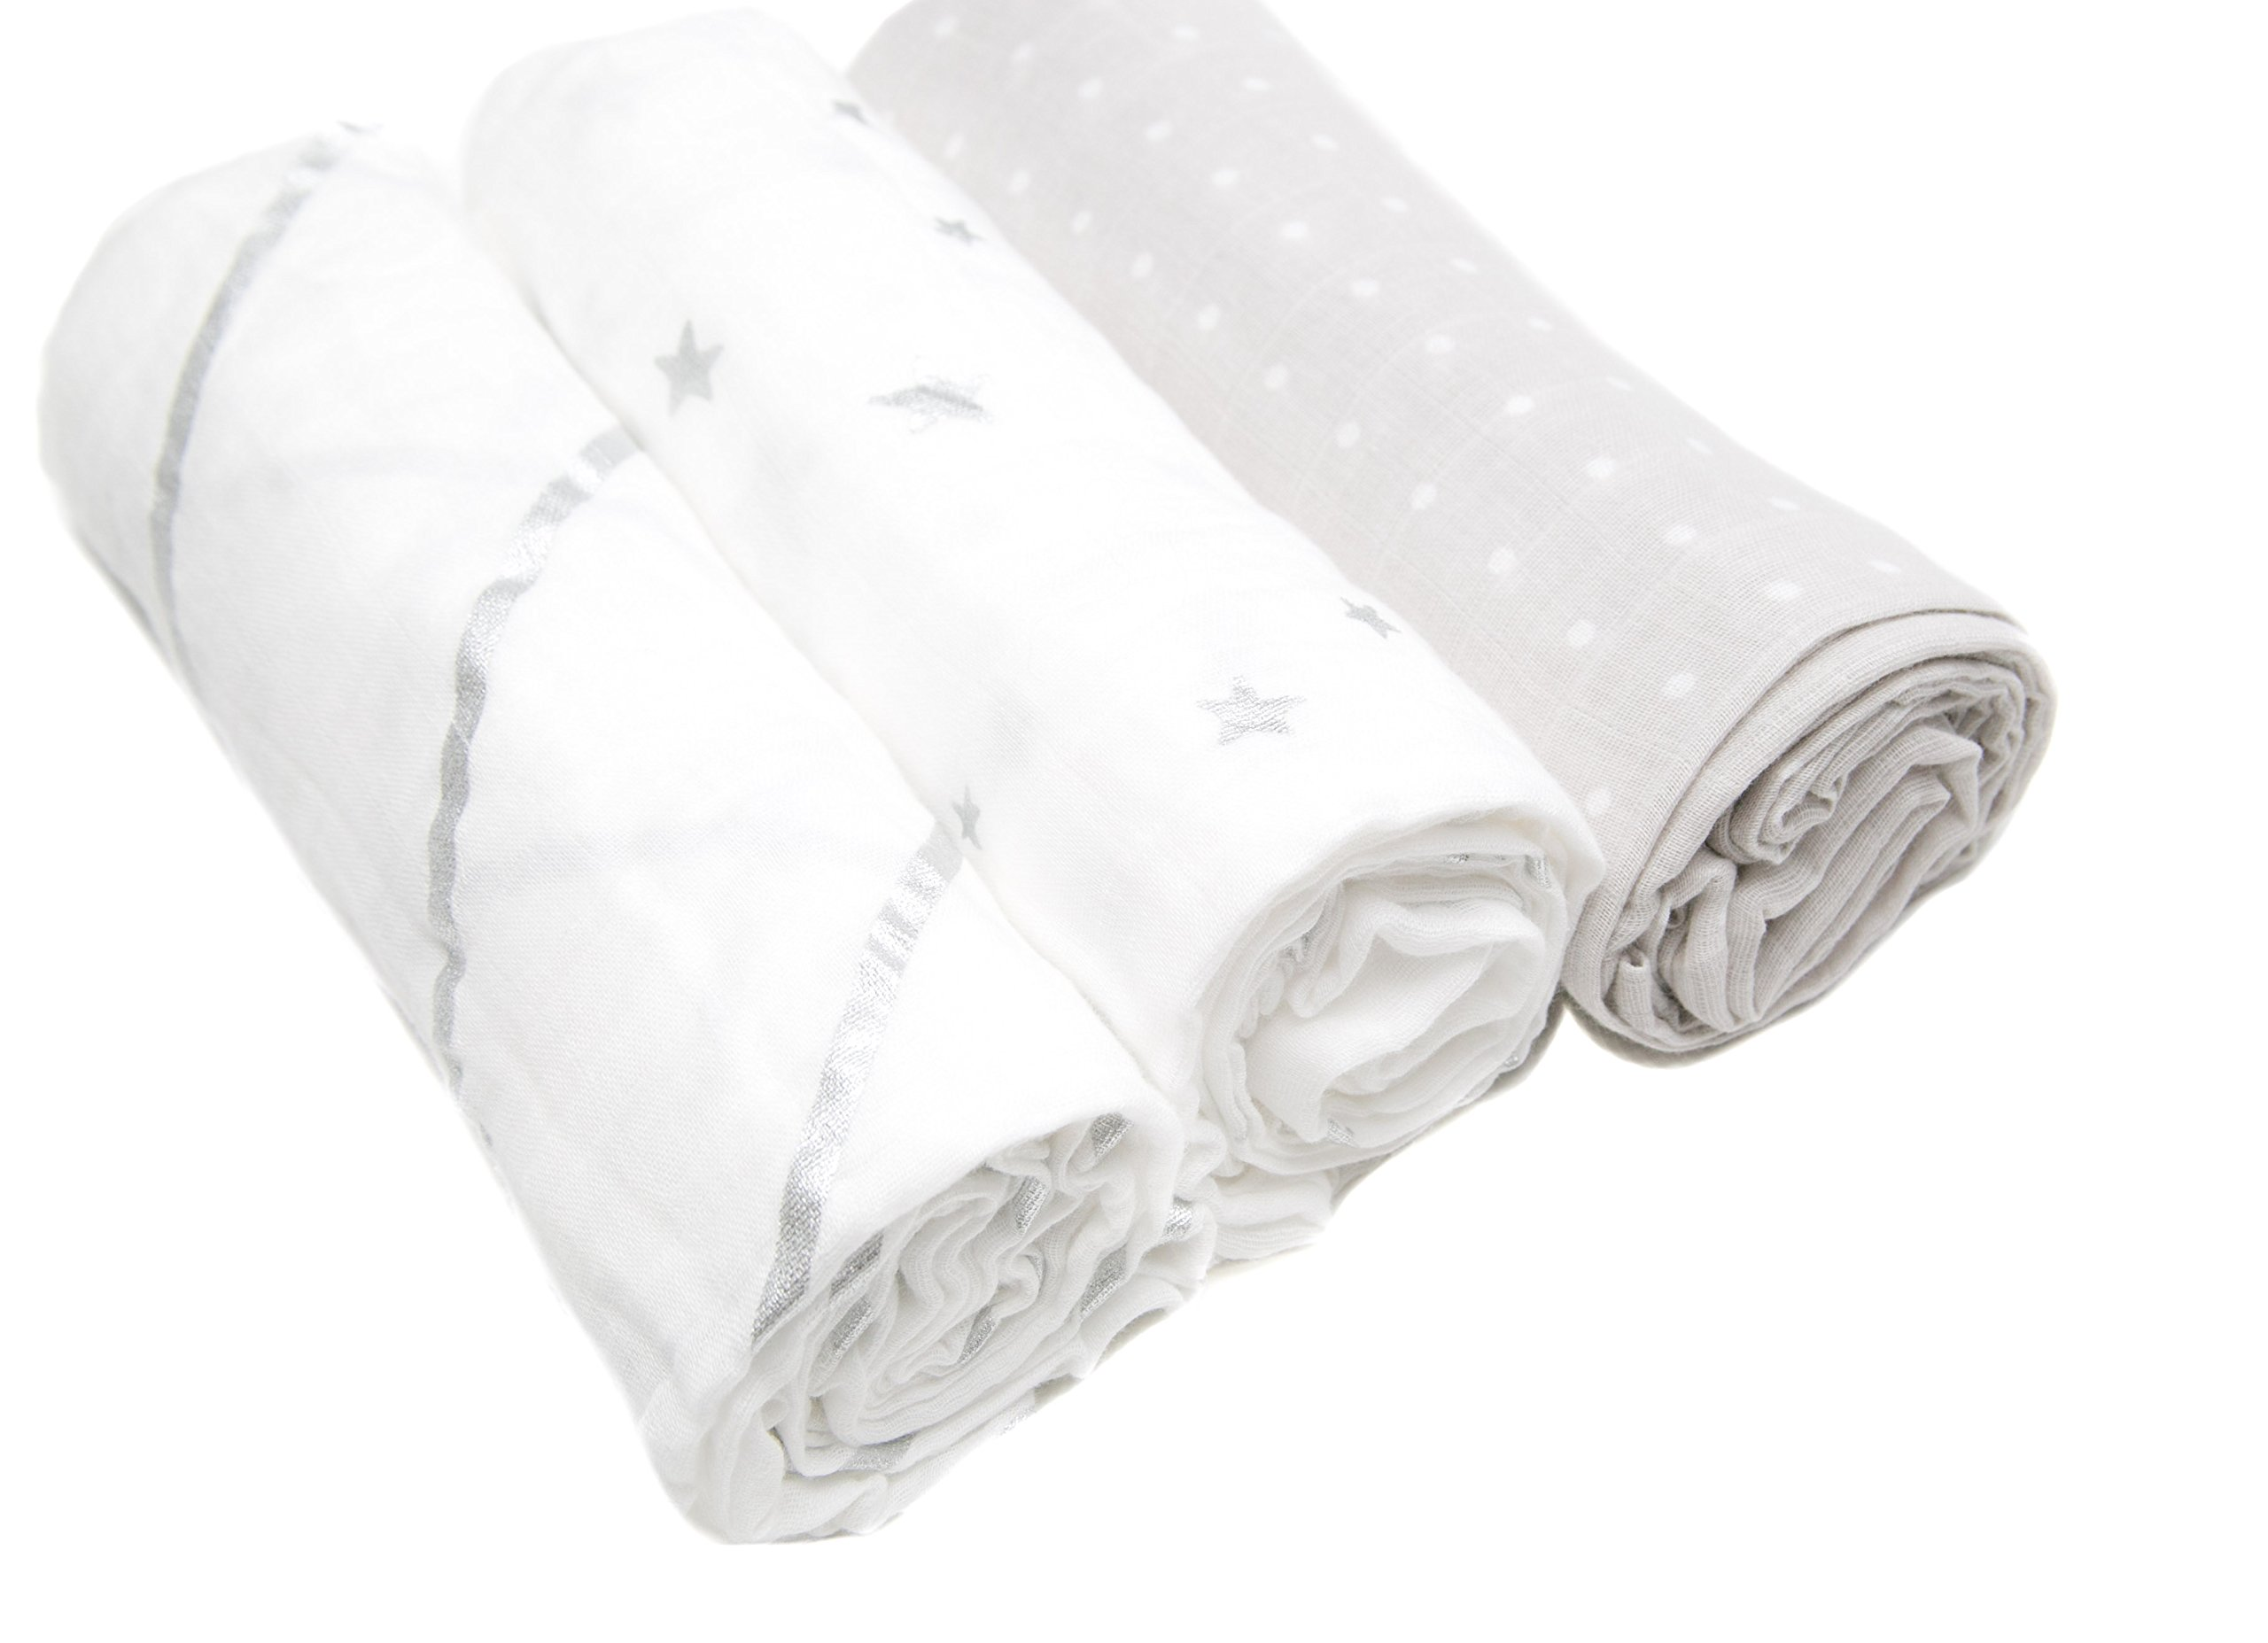 Sugar & Spice 3 pack Super Soft Muslin Baby Swaddle Blankets, Silver, White and Grey